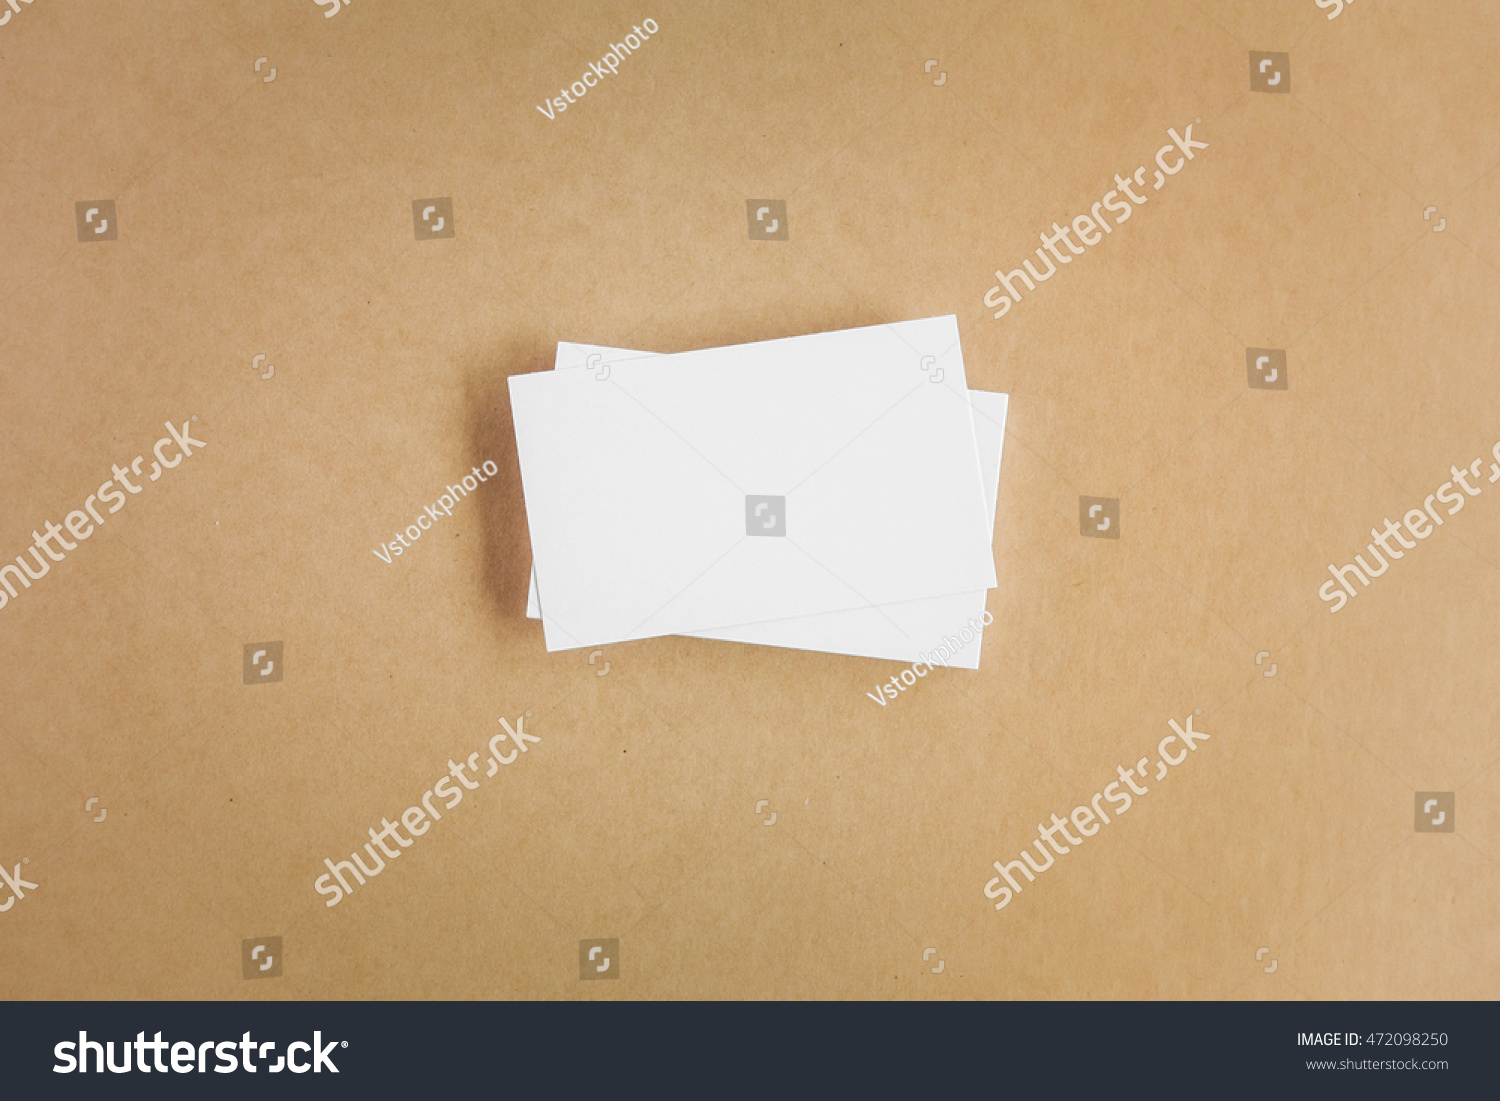 Blank Business Cards On Recycled Paper Stock Photo (Safe to Use ...